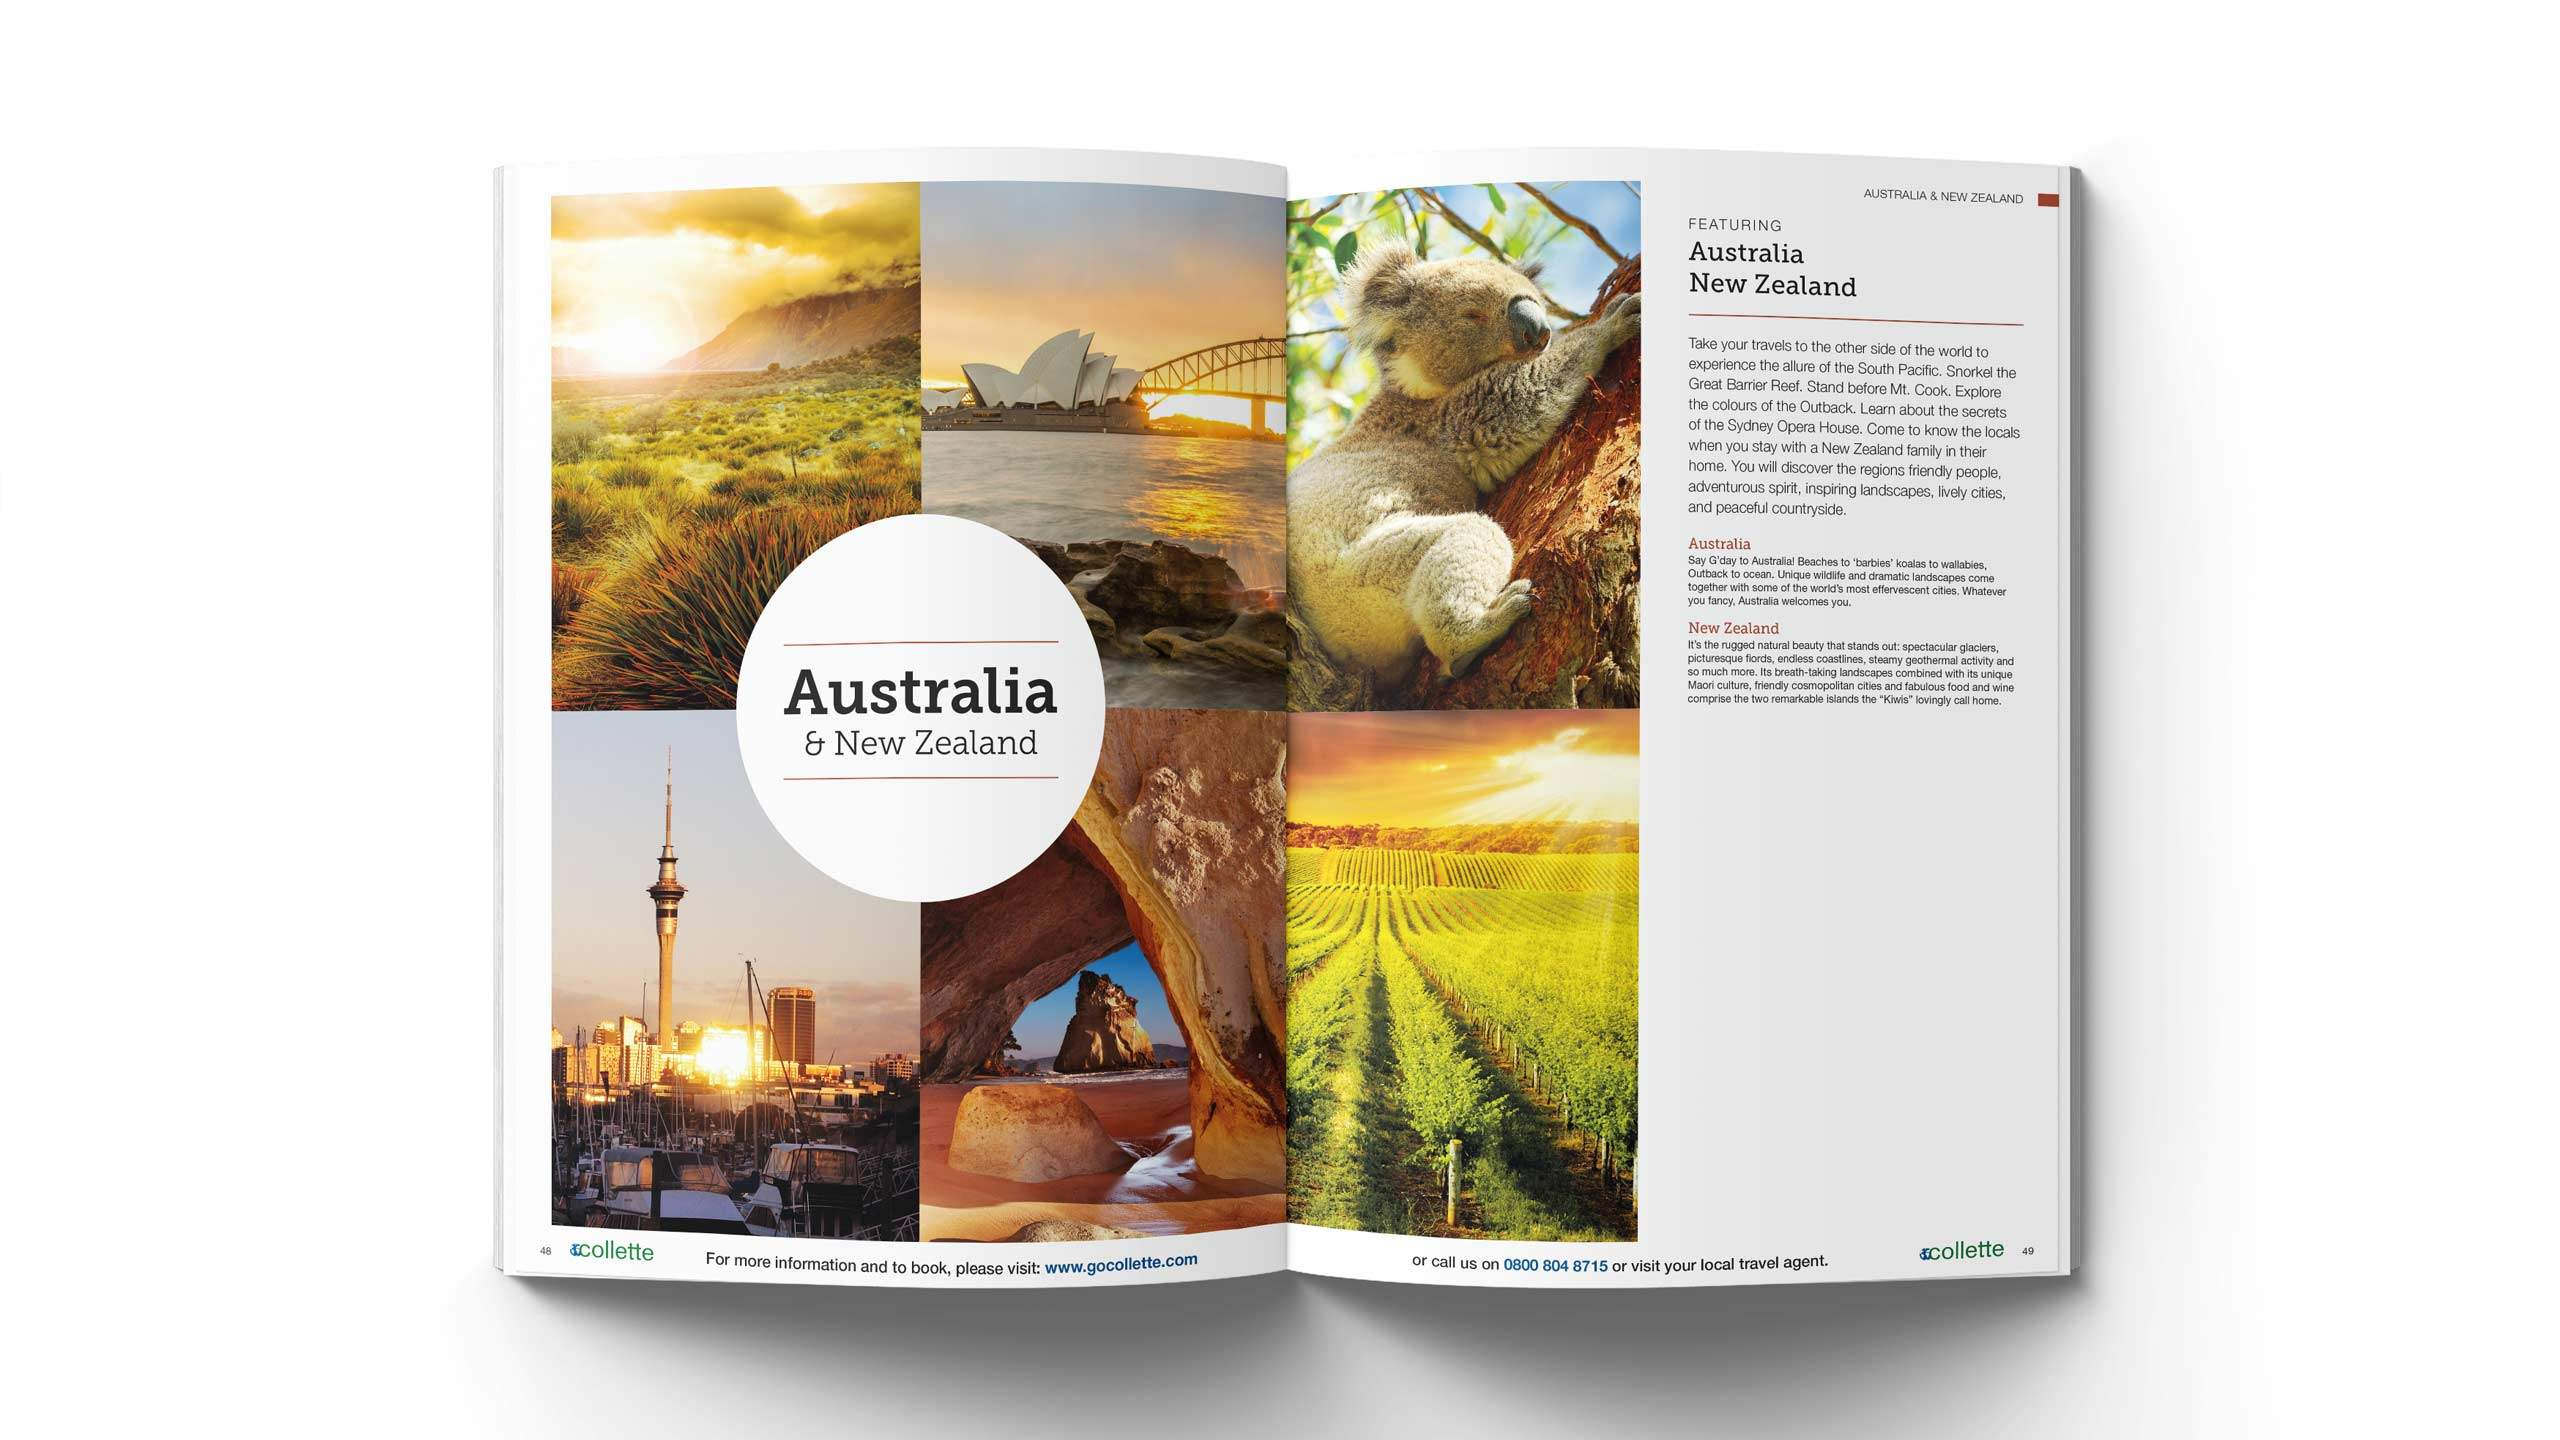 escorted travel brochure design australia new zealand pages collette thomas cook